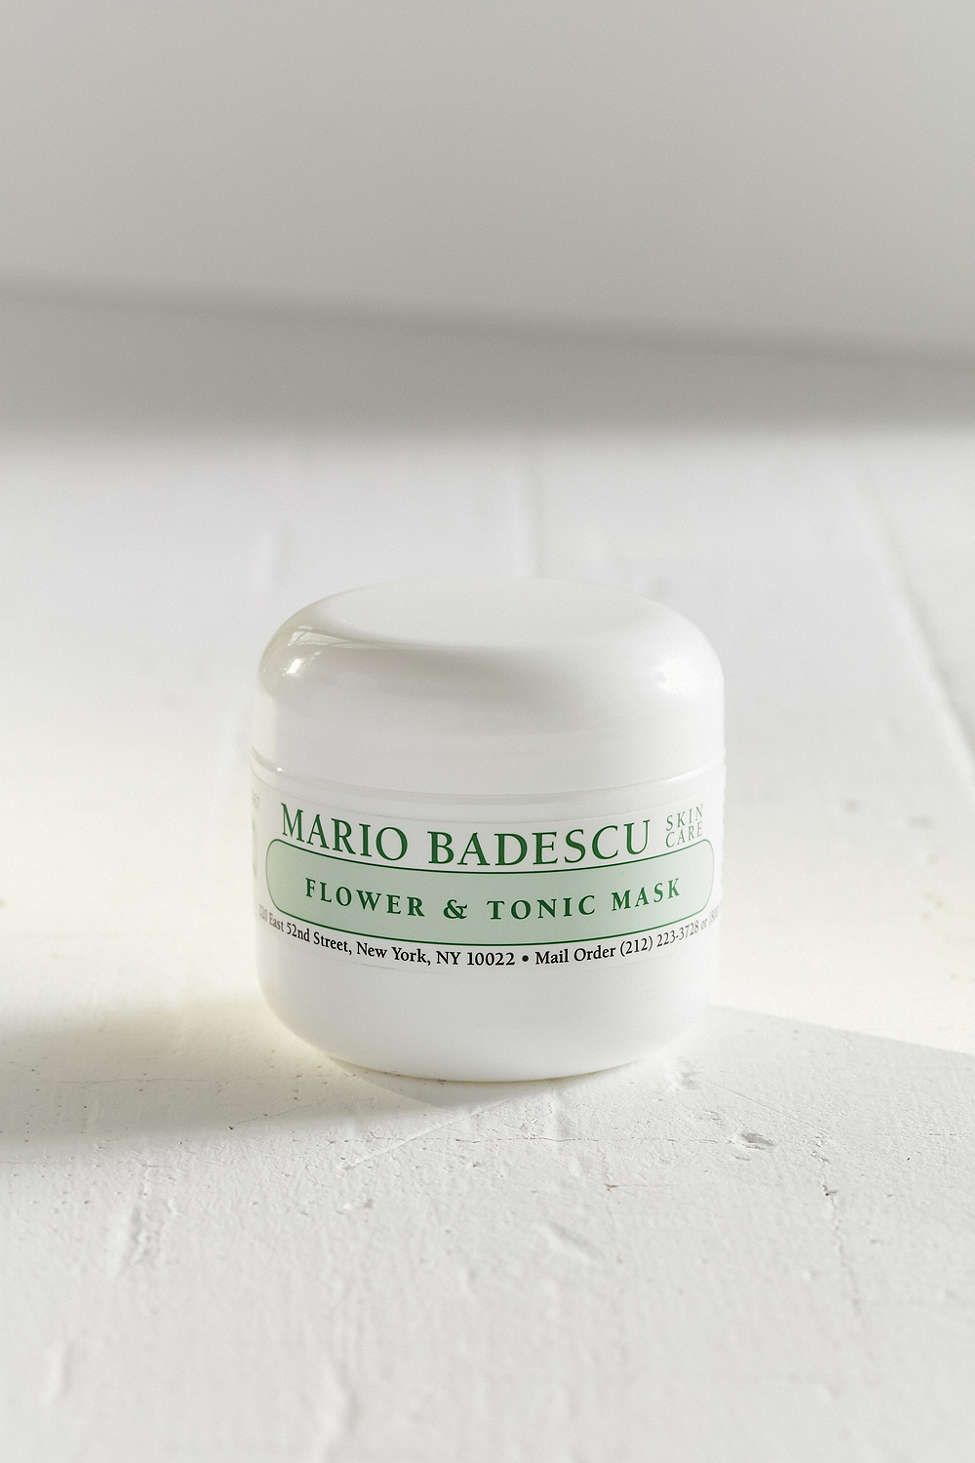 Pin By Lisa Li On Products In 2020 Mario Badescu Skin Care Mask